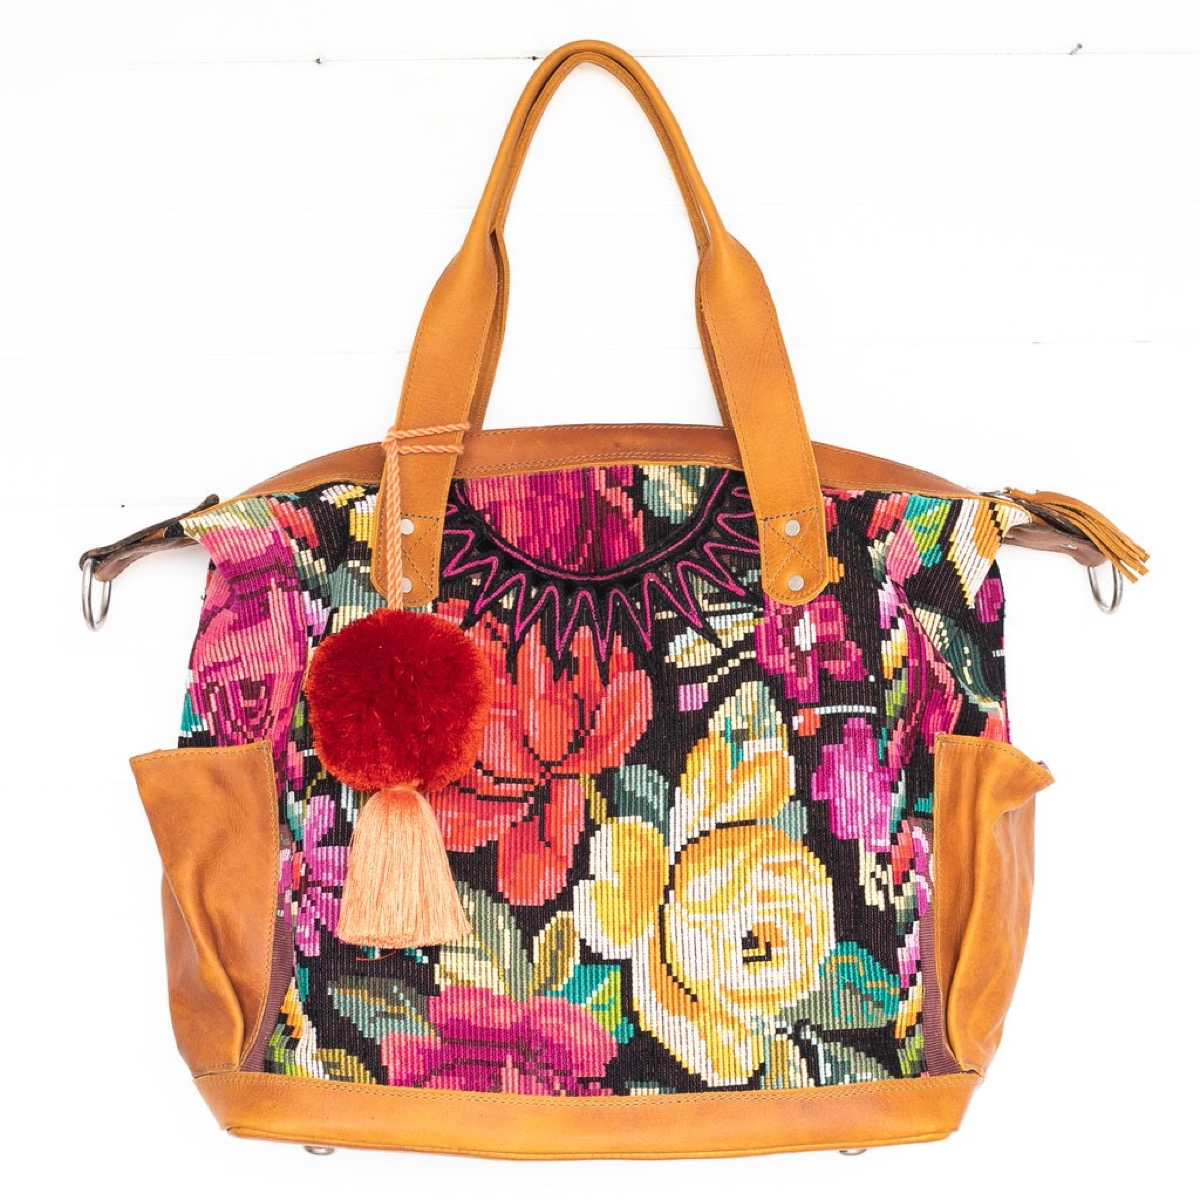 Floral embroidered bag with pom pom